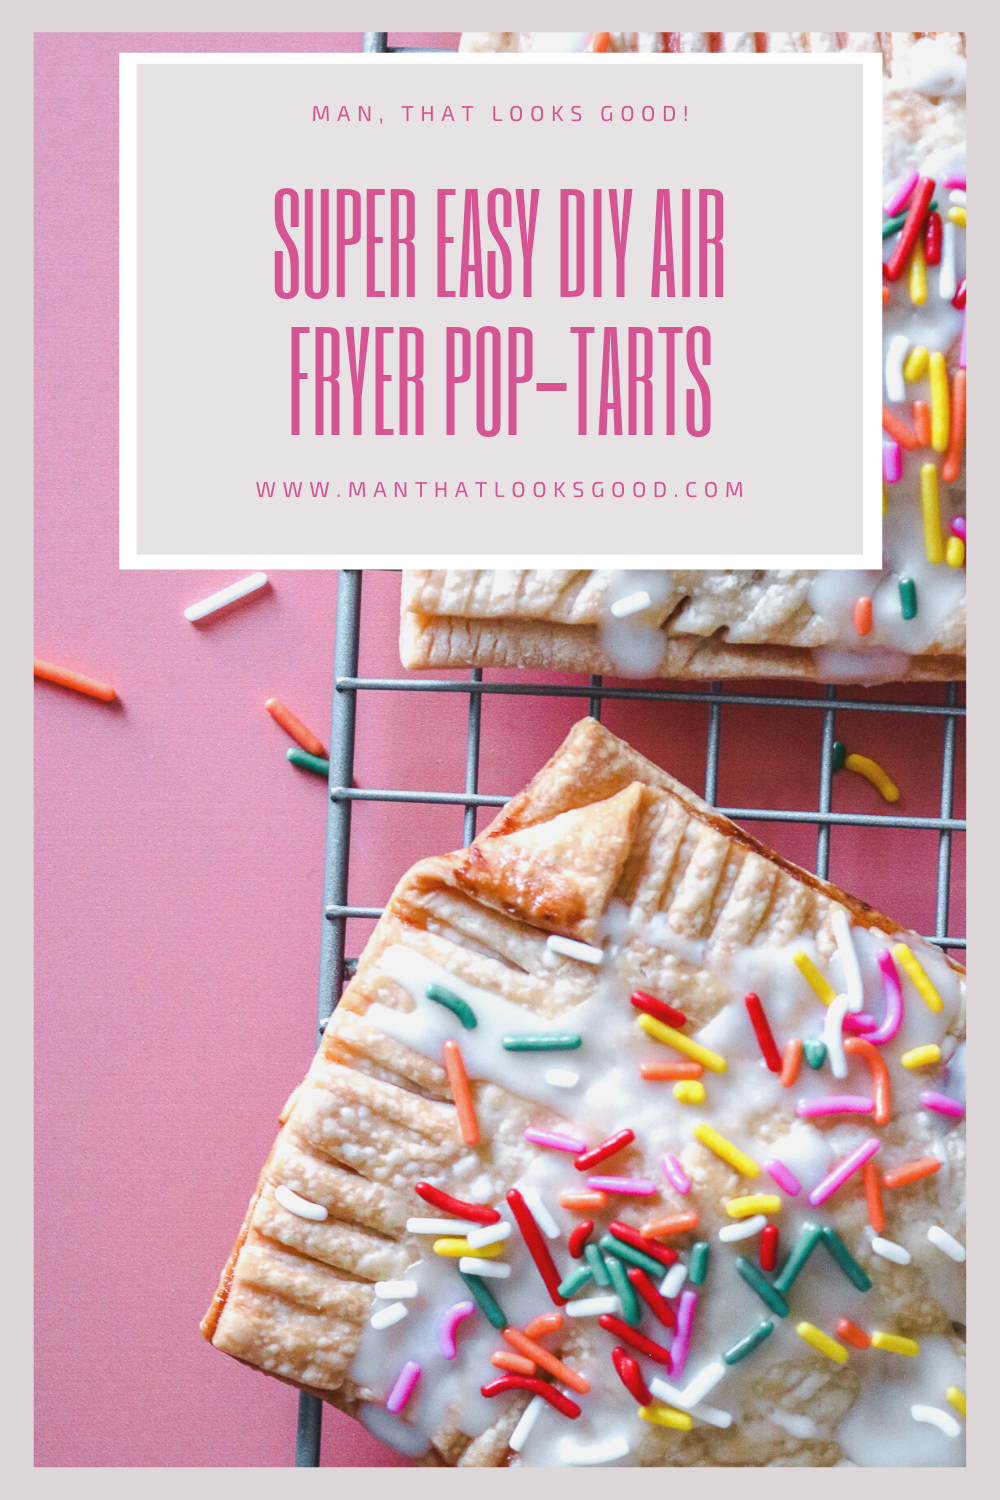 Super Easy DIY Air Fryer Pop-Tarts